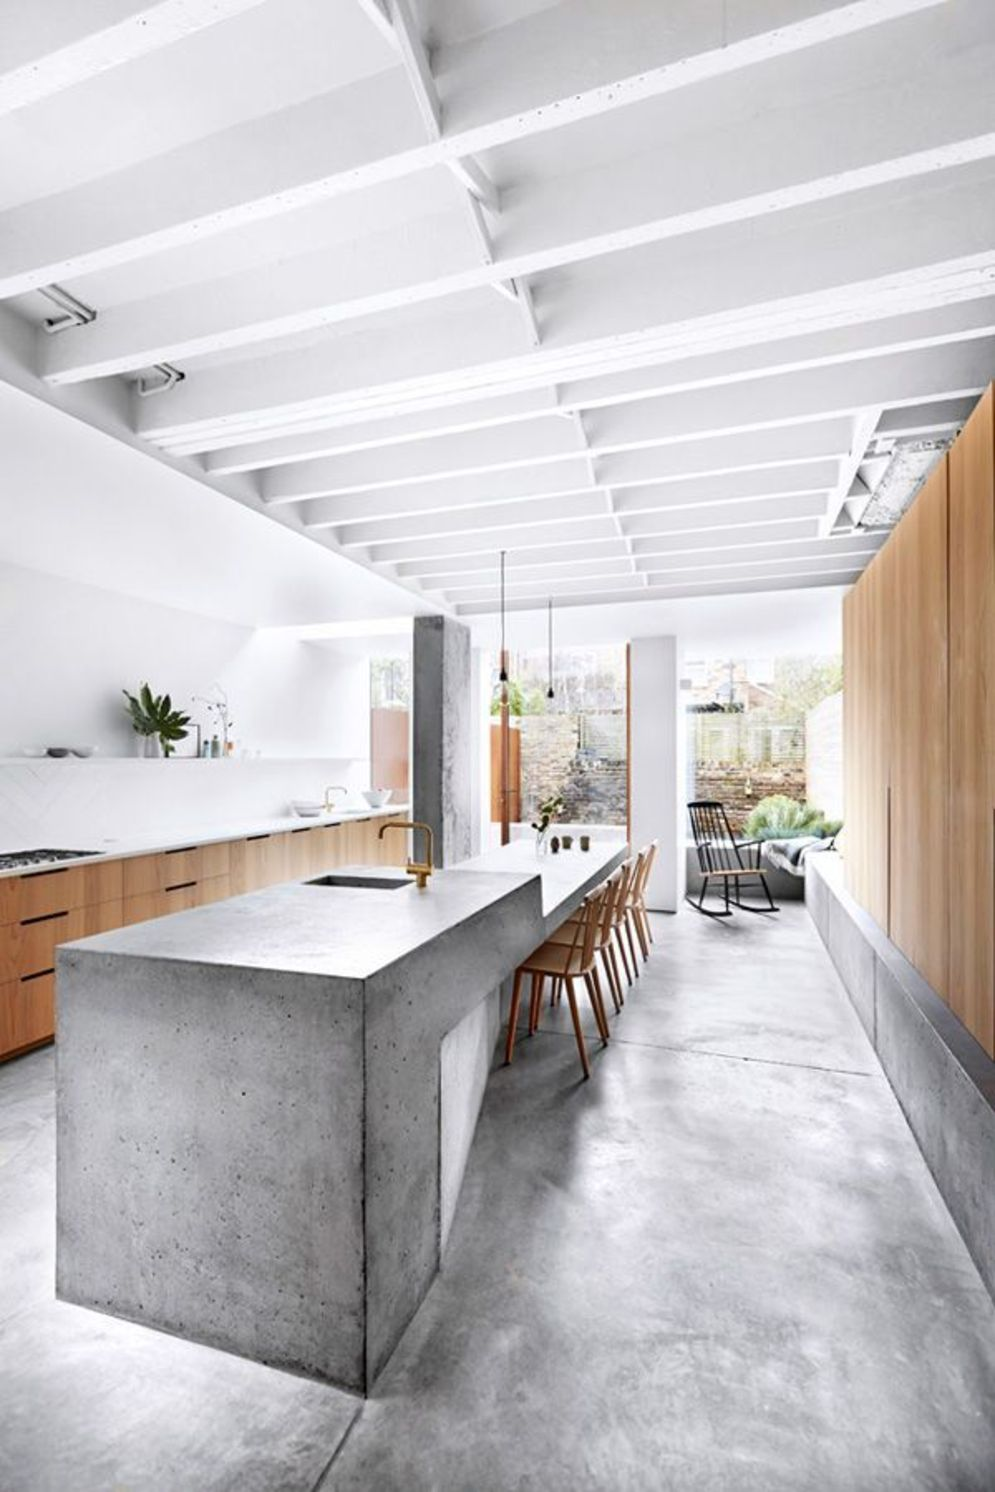 Classy kitchen styles in bold display maximizing concrete benchtop designs Image 19